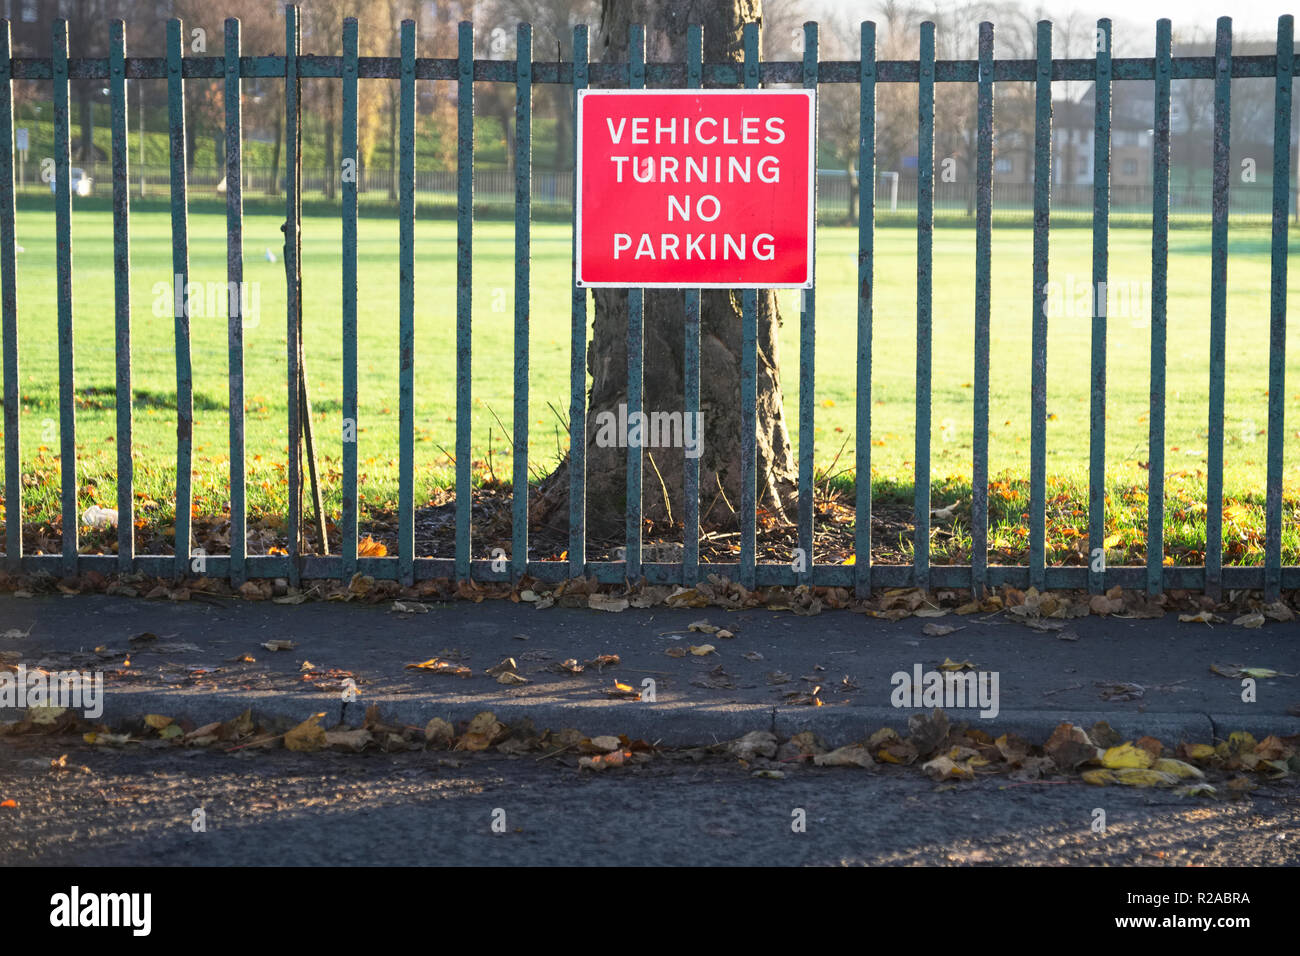 No vehicles allowed turning or parking sign at road Stock Photo